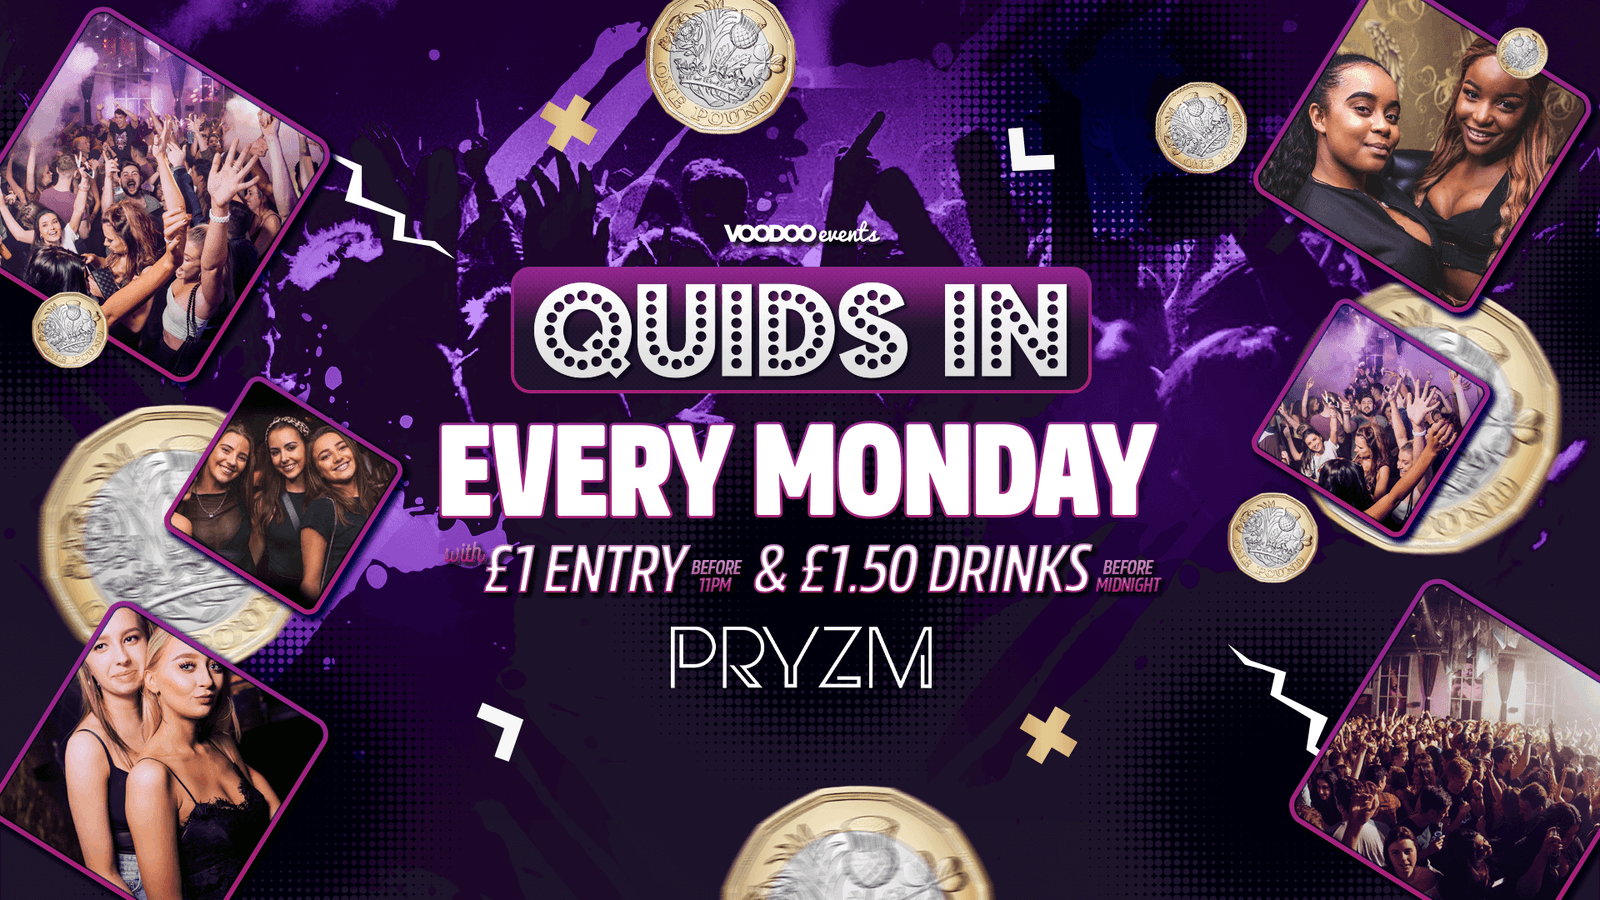 Quids In Mondays at PRYZM – 6th September